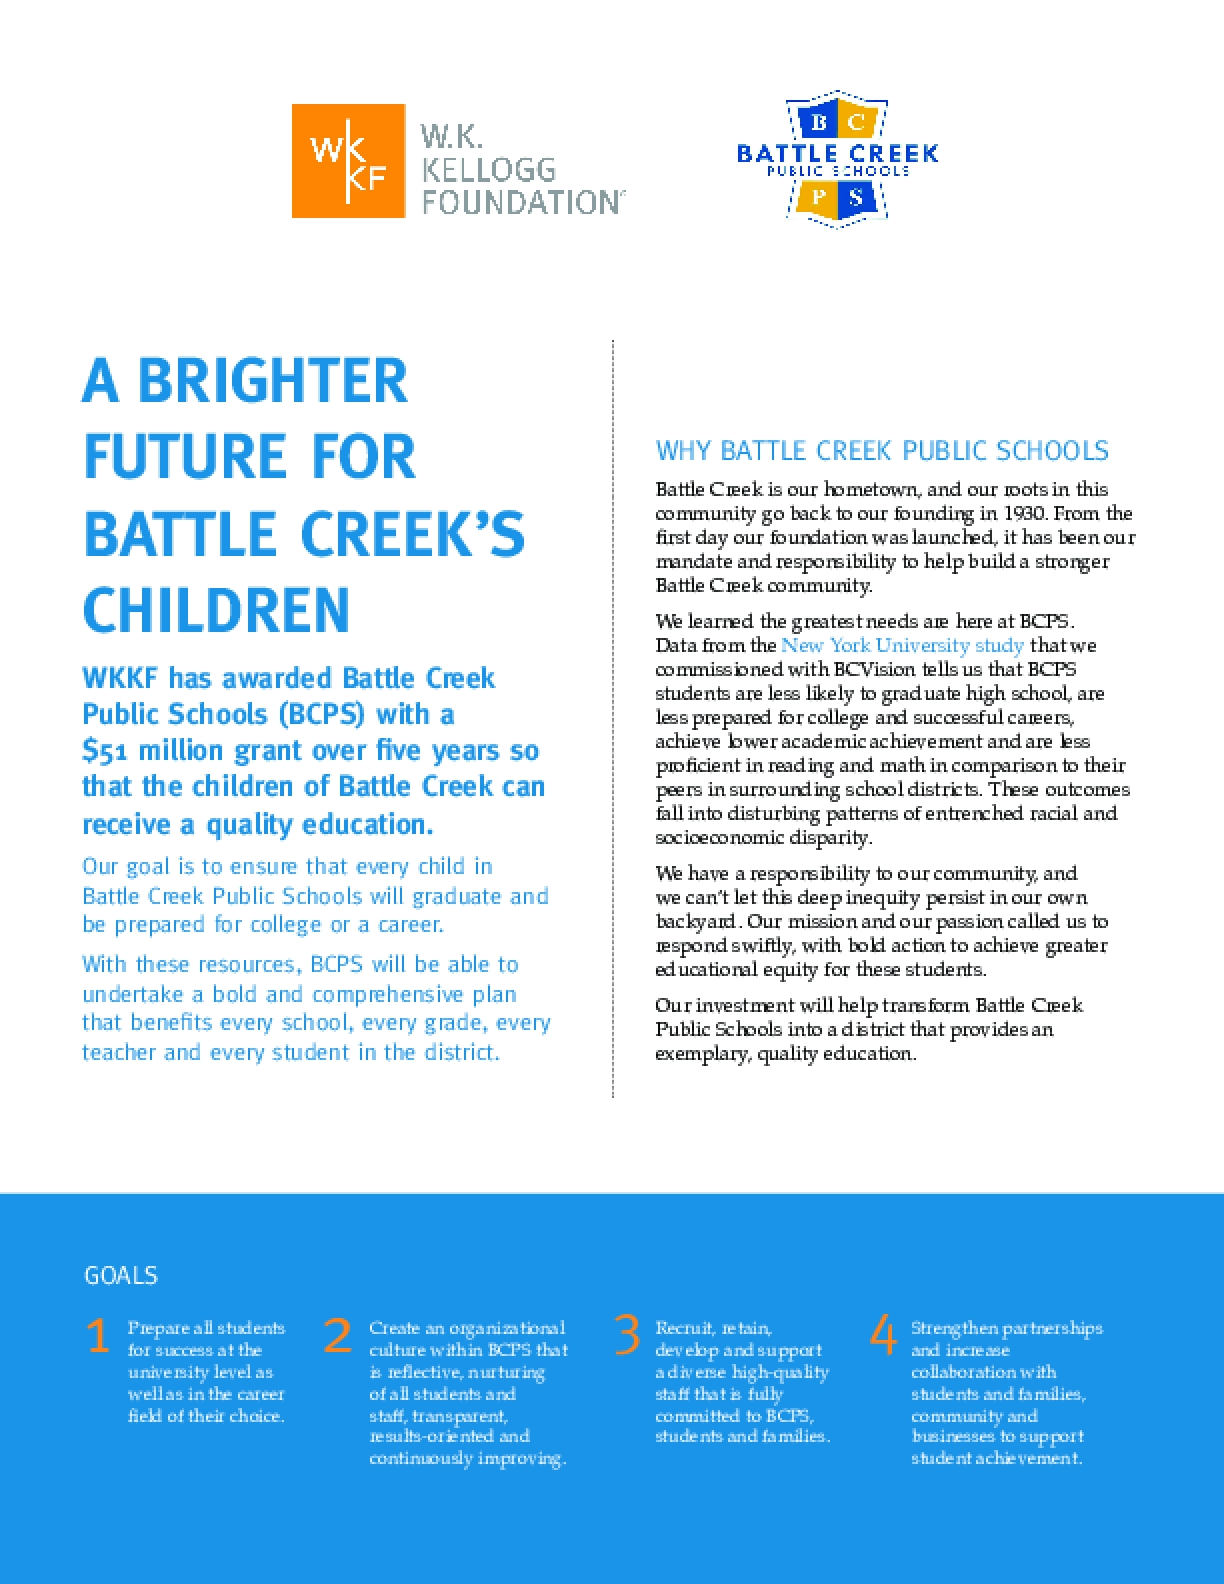 A Brighter Future for Battle Creek's Children: Fact Sheet